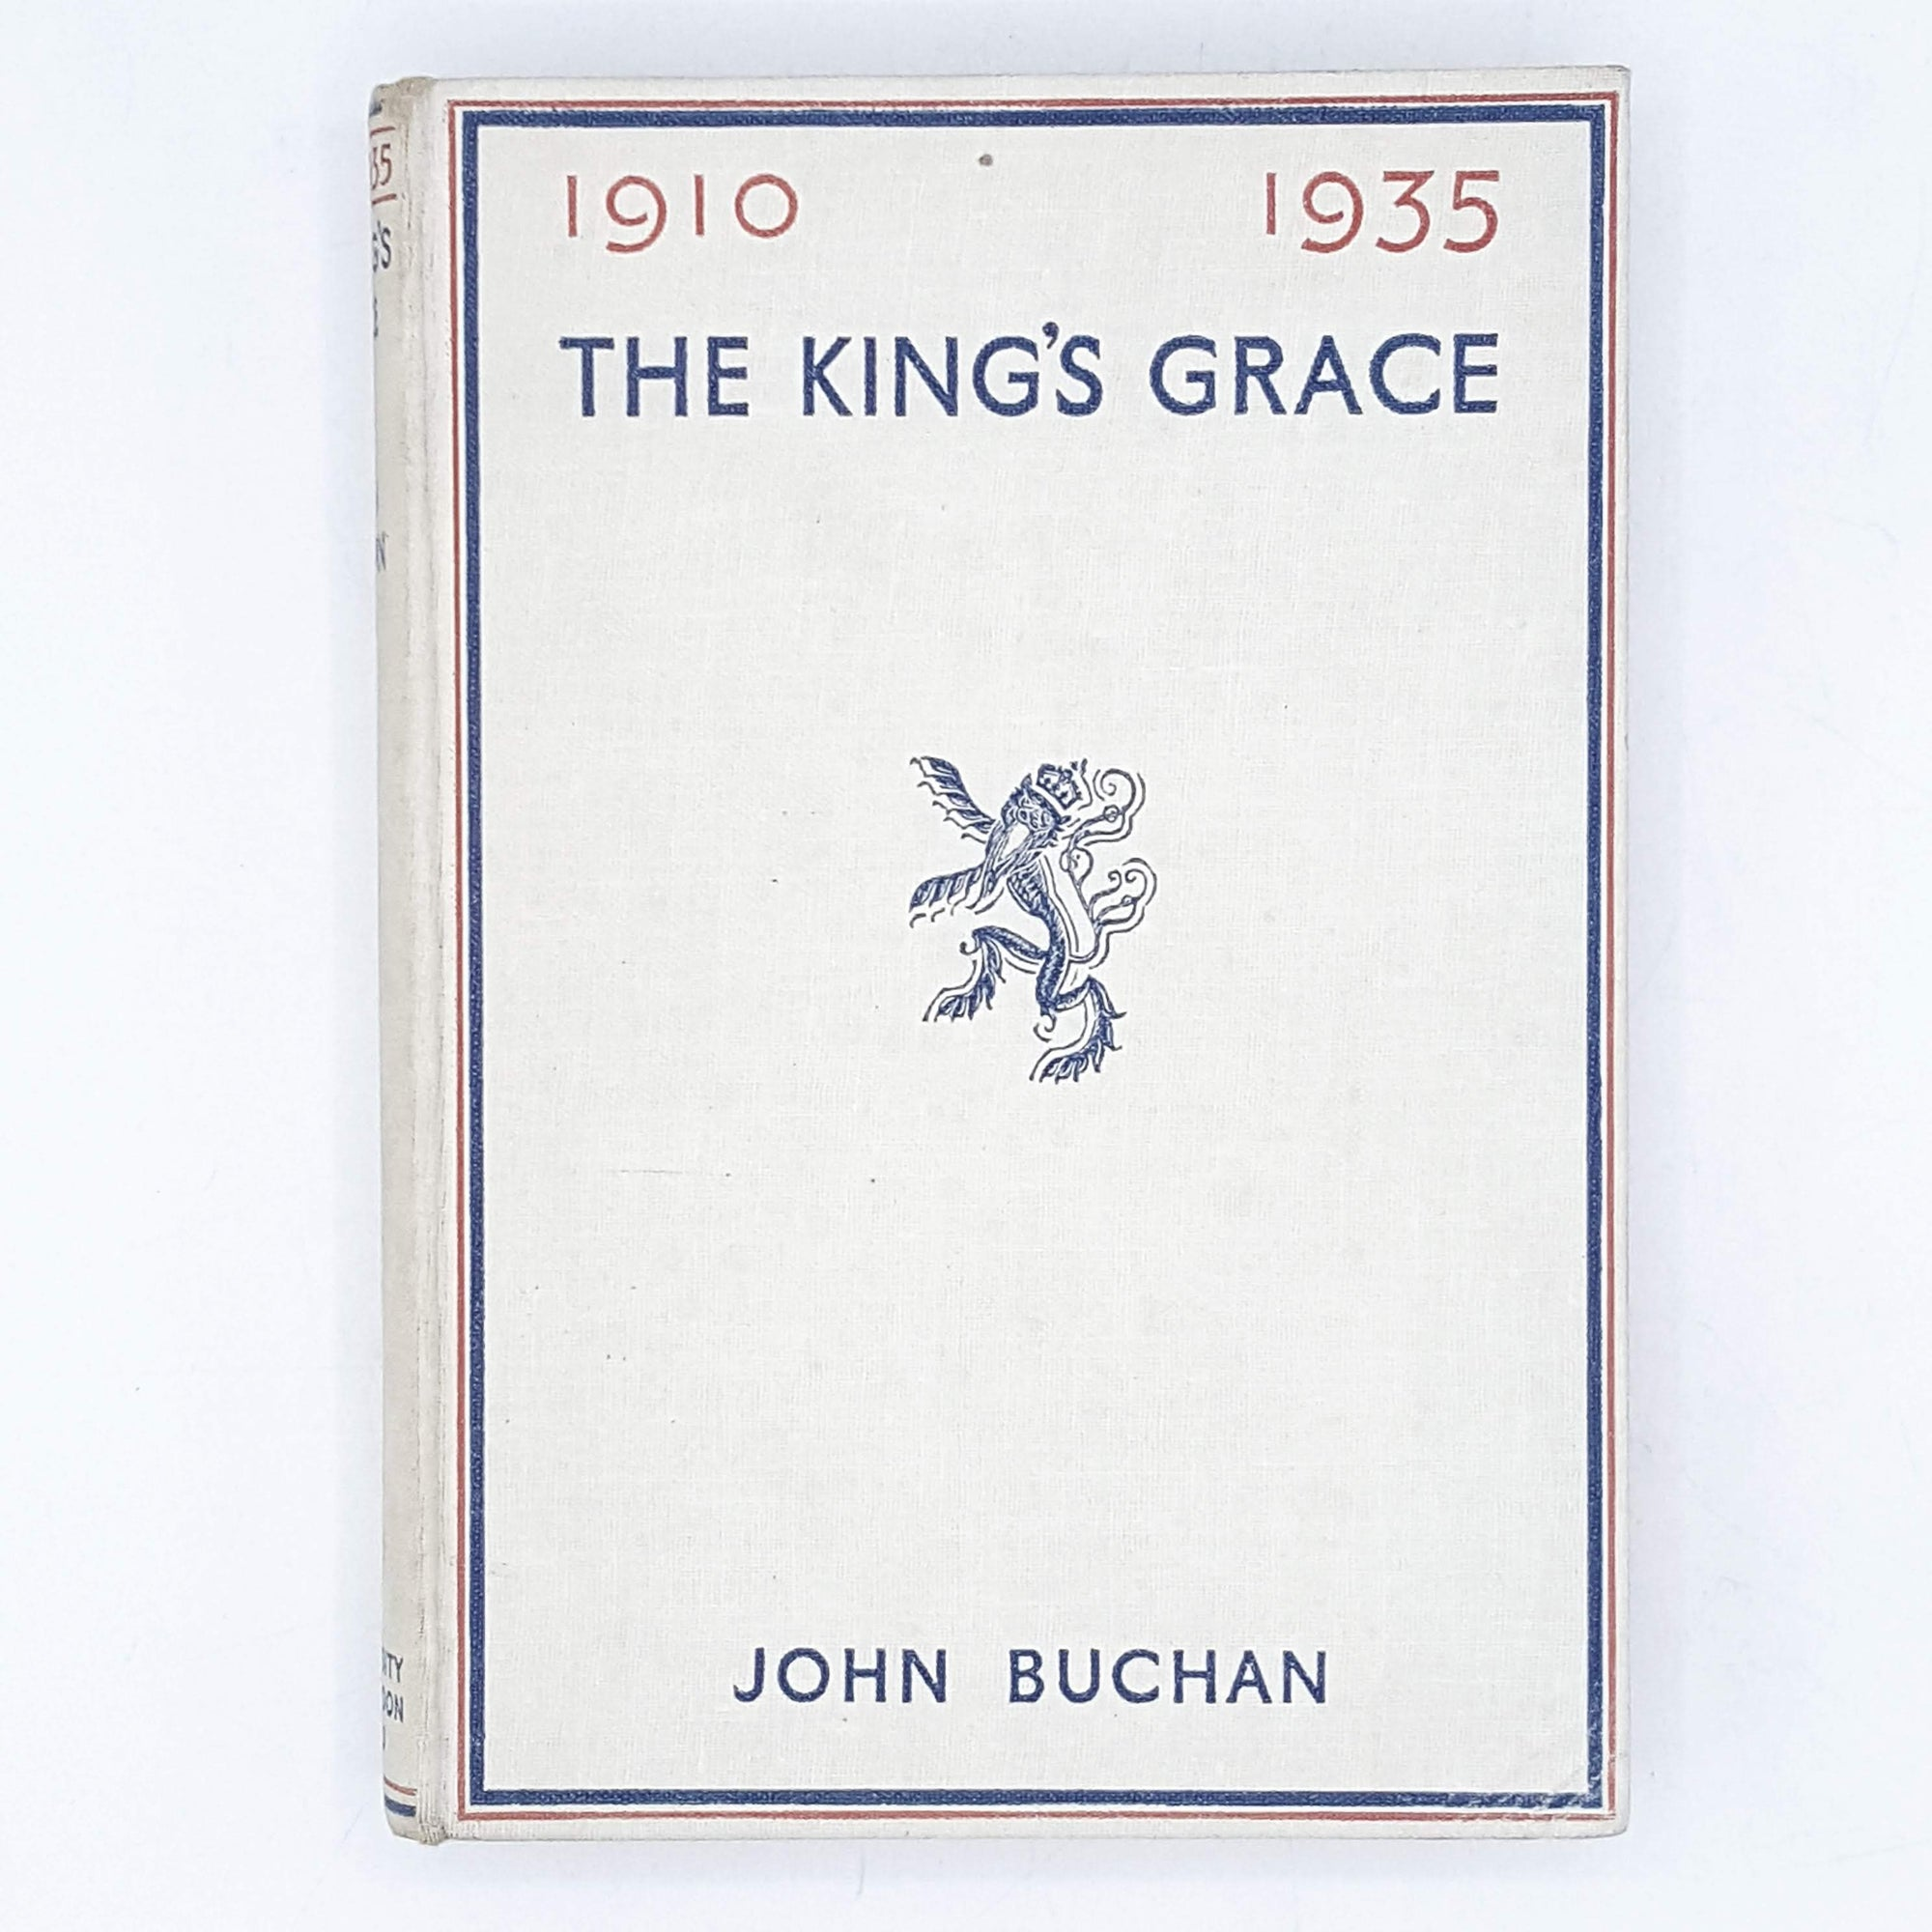 The King's Grace 1910-1935 by John Buchan 1935